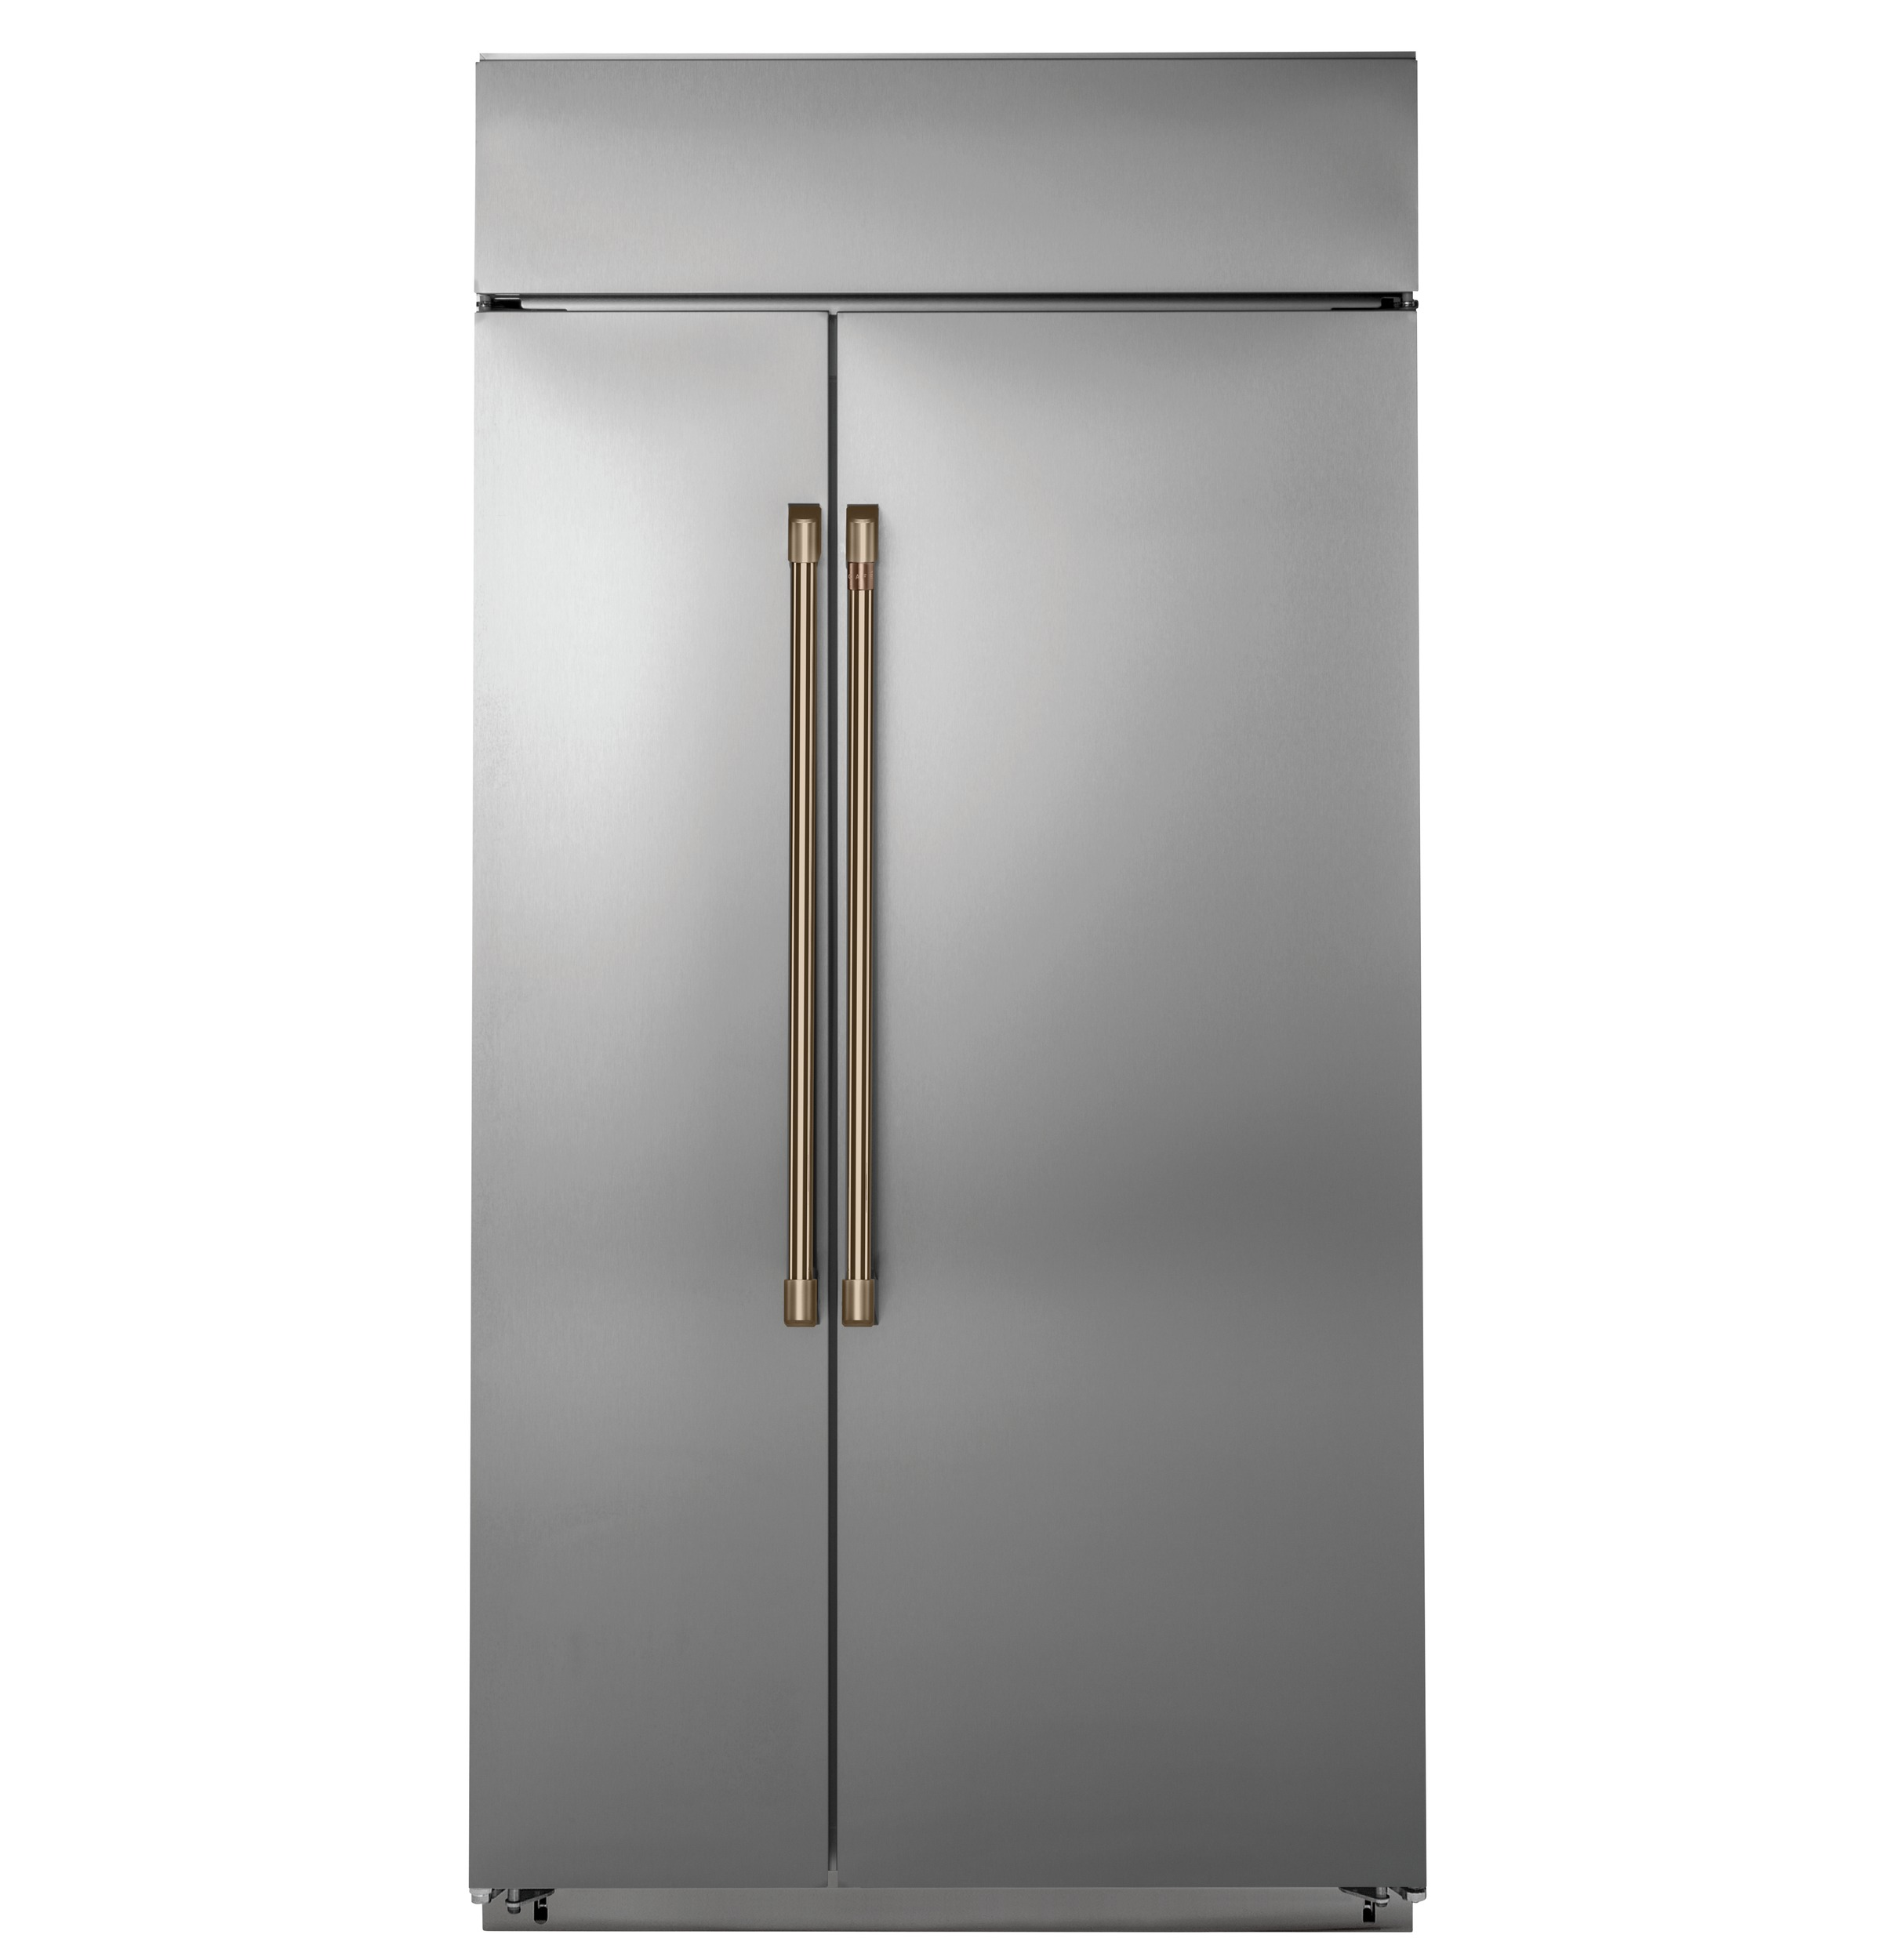 "Model: CSB42WP2NS1 | Cafe Café™ 42"" Smart Built-In Side-by-Side Refrigerator"